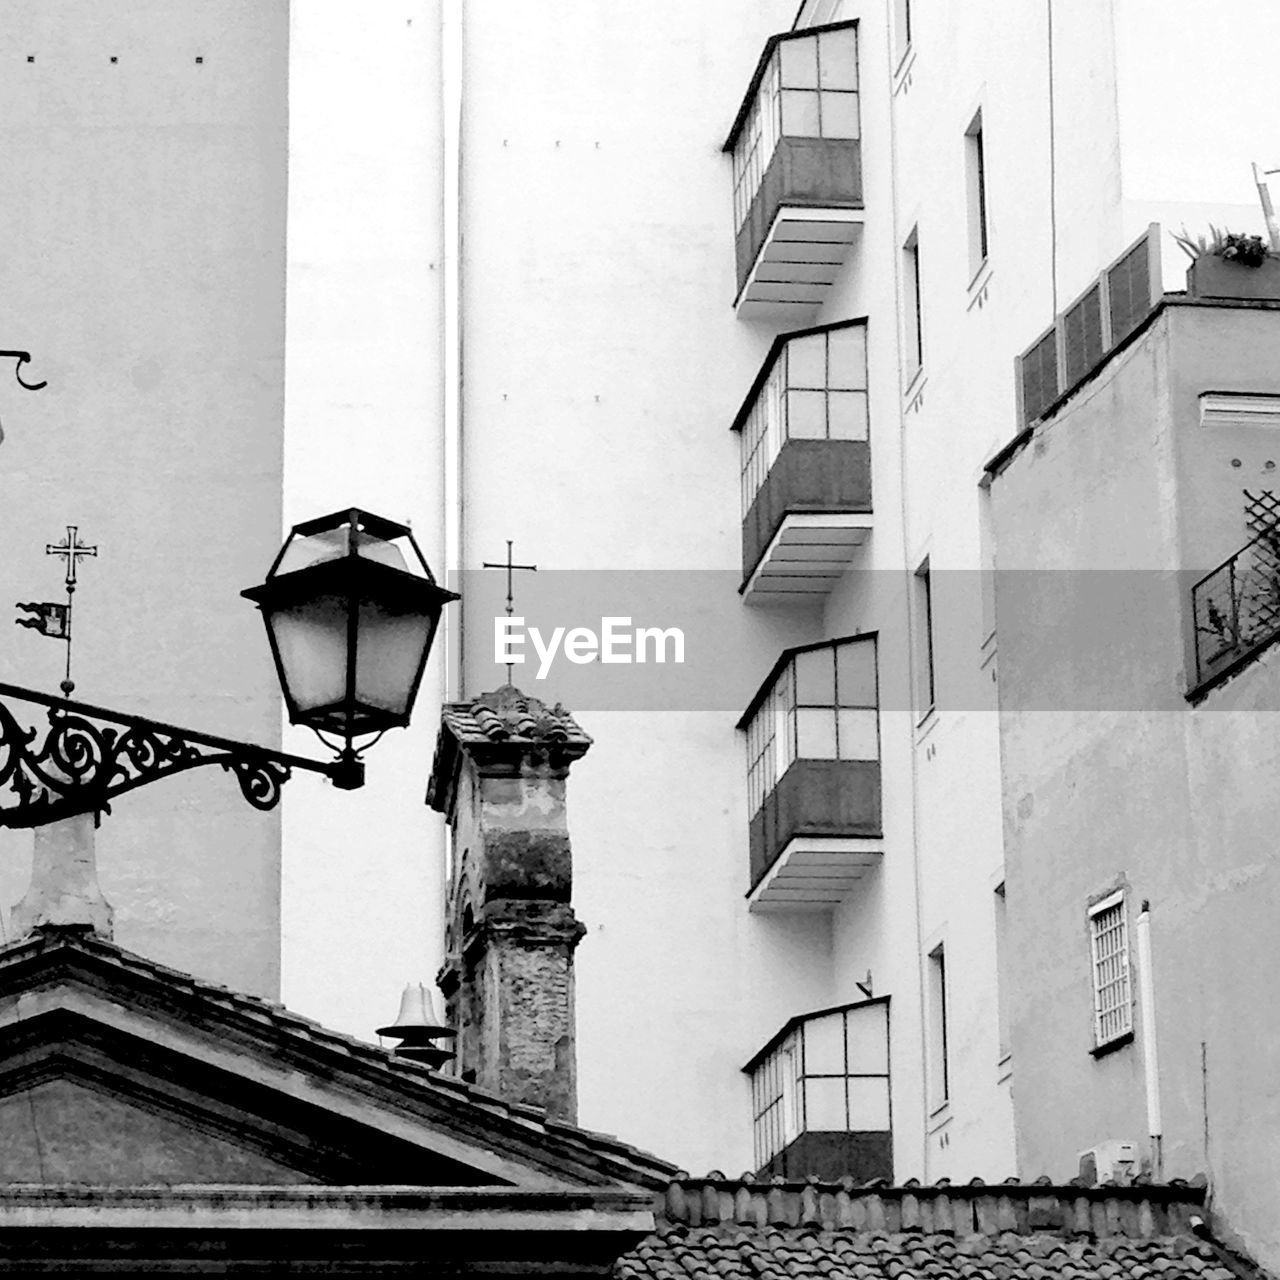 building exterior, architecture, lighting equipment, built structure, street light, street lamp, low angle view, no people, outdoors, gas light, day, city, sky